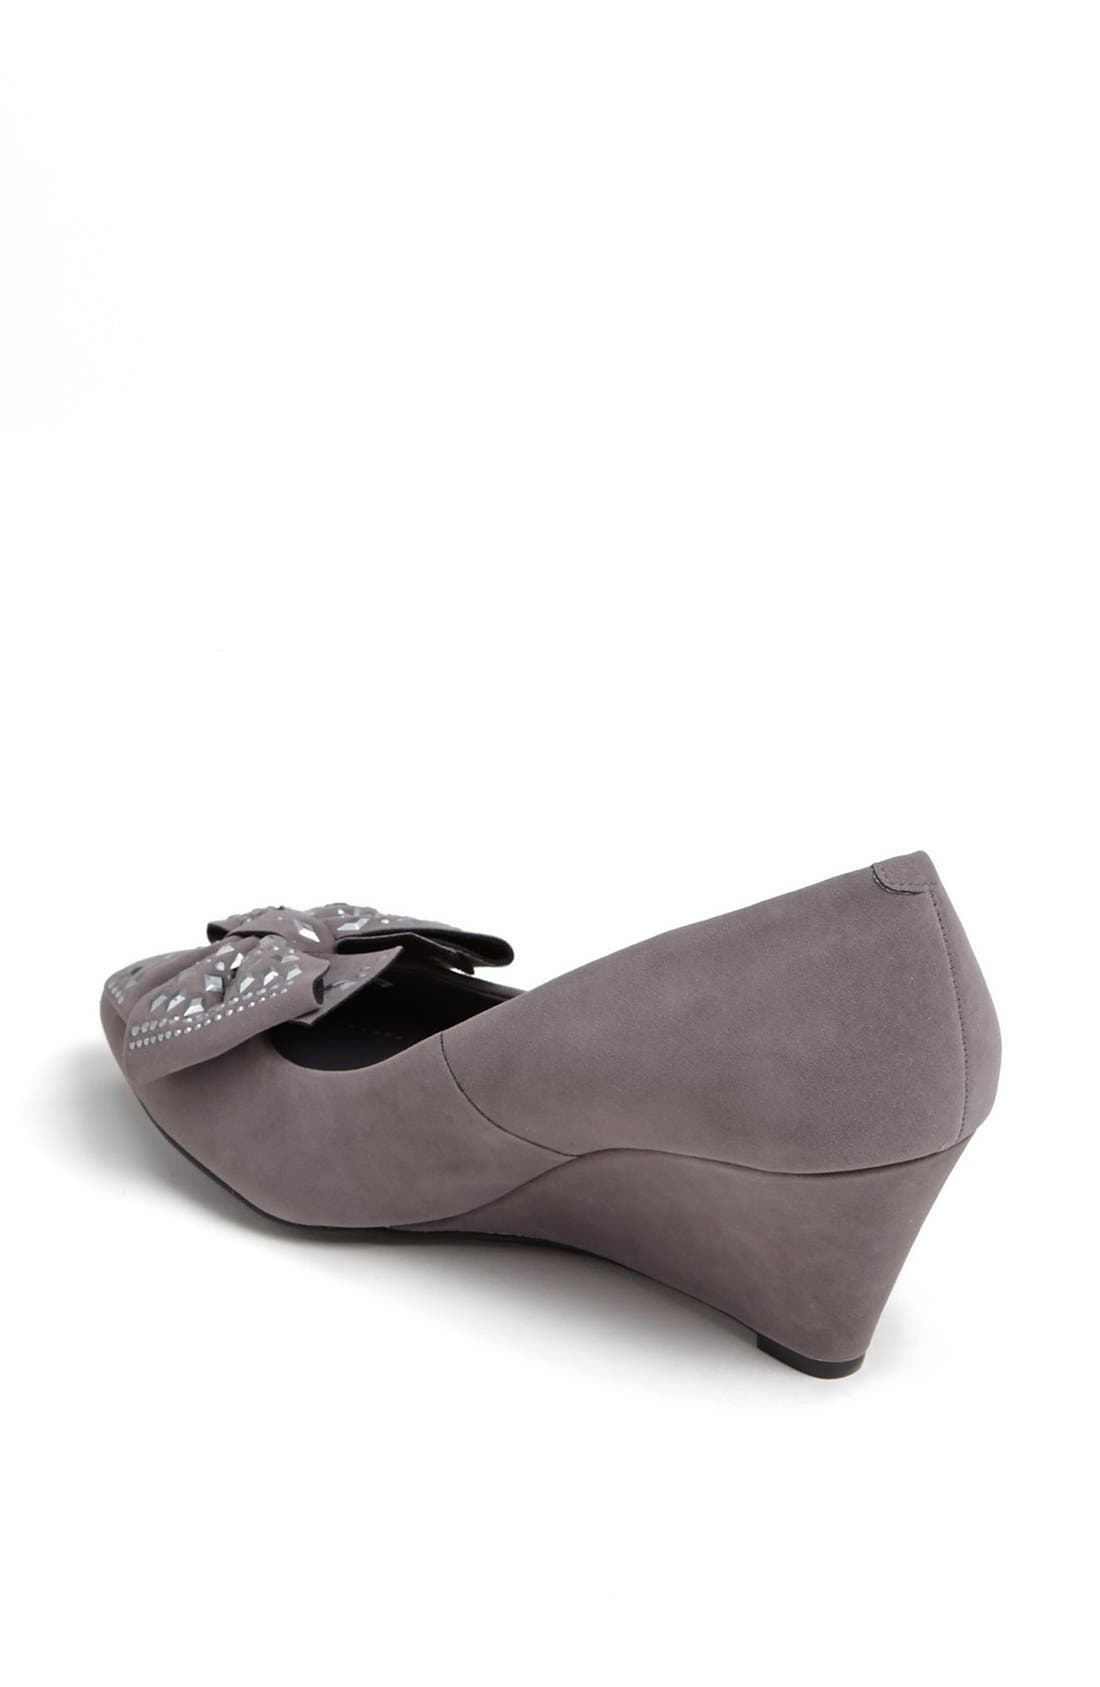 Alternate Image 3  - BCBGeneration 'Amelia' Wedge